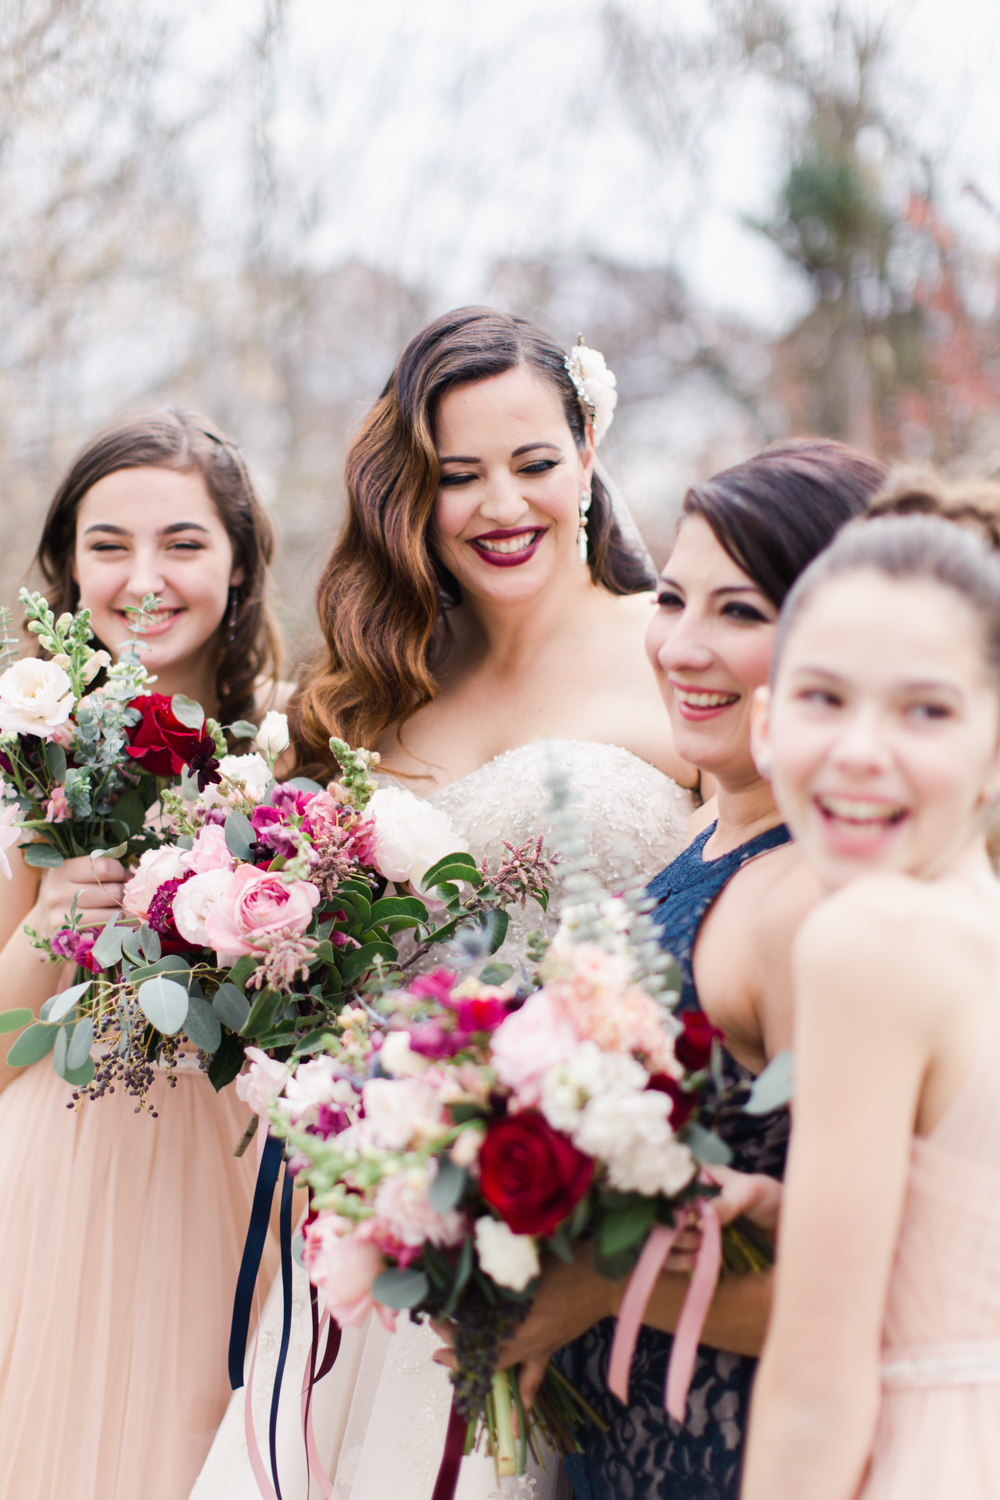 Beautiful romantic florals from Gold Dust in Pittsburgh PA for a Navy and Blush wedding day.